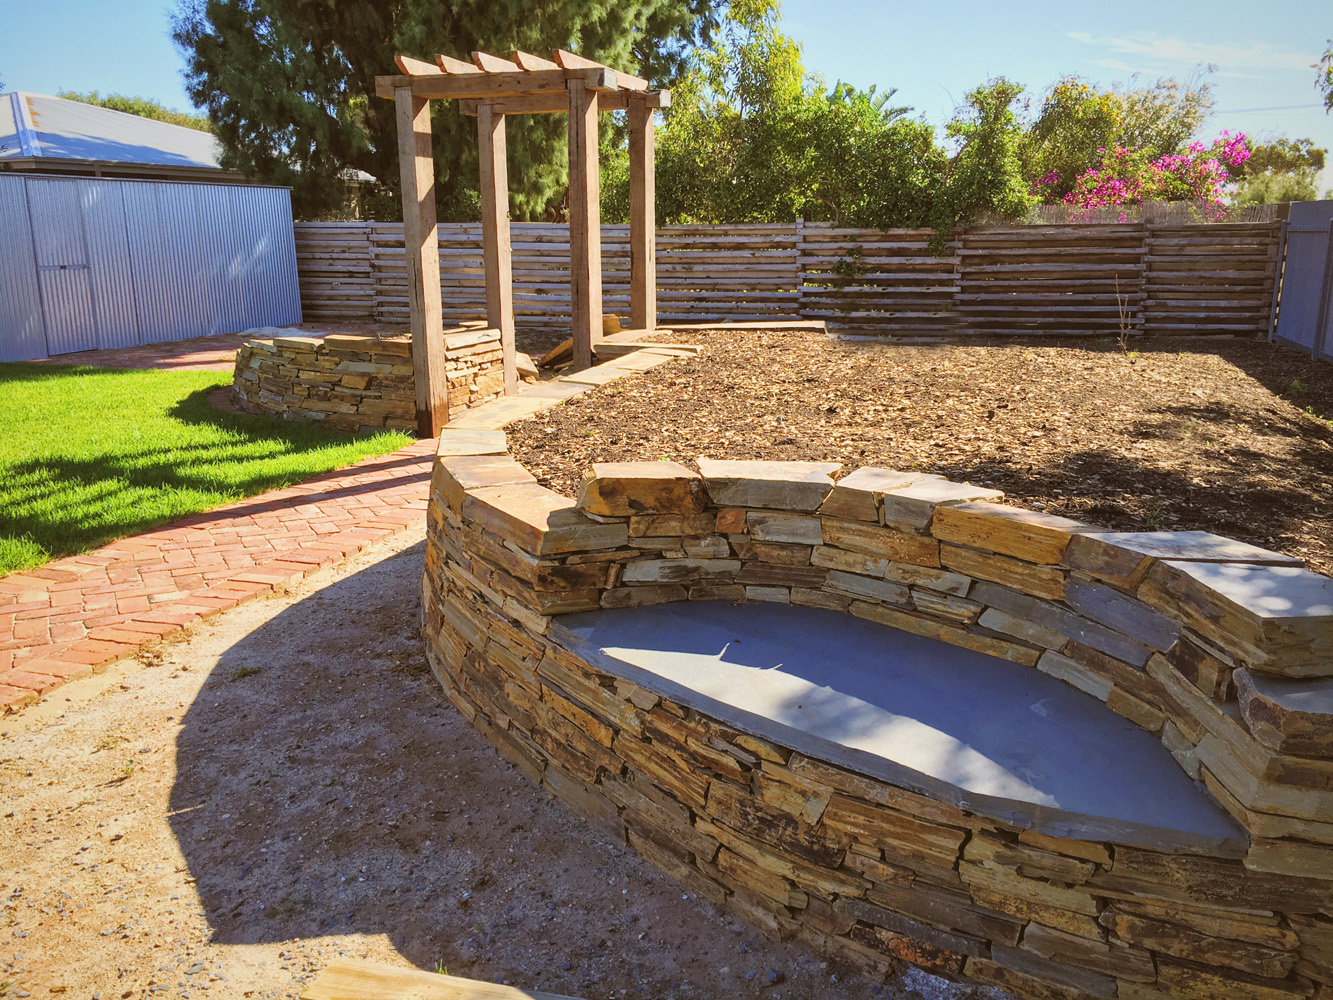 Elegant seat built into drystone wall with arbor behind